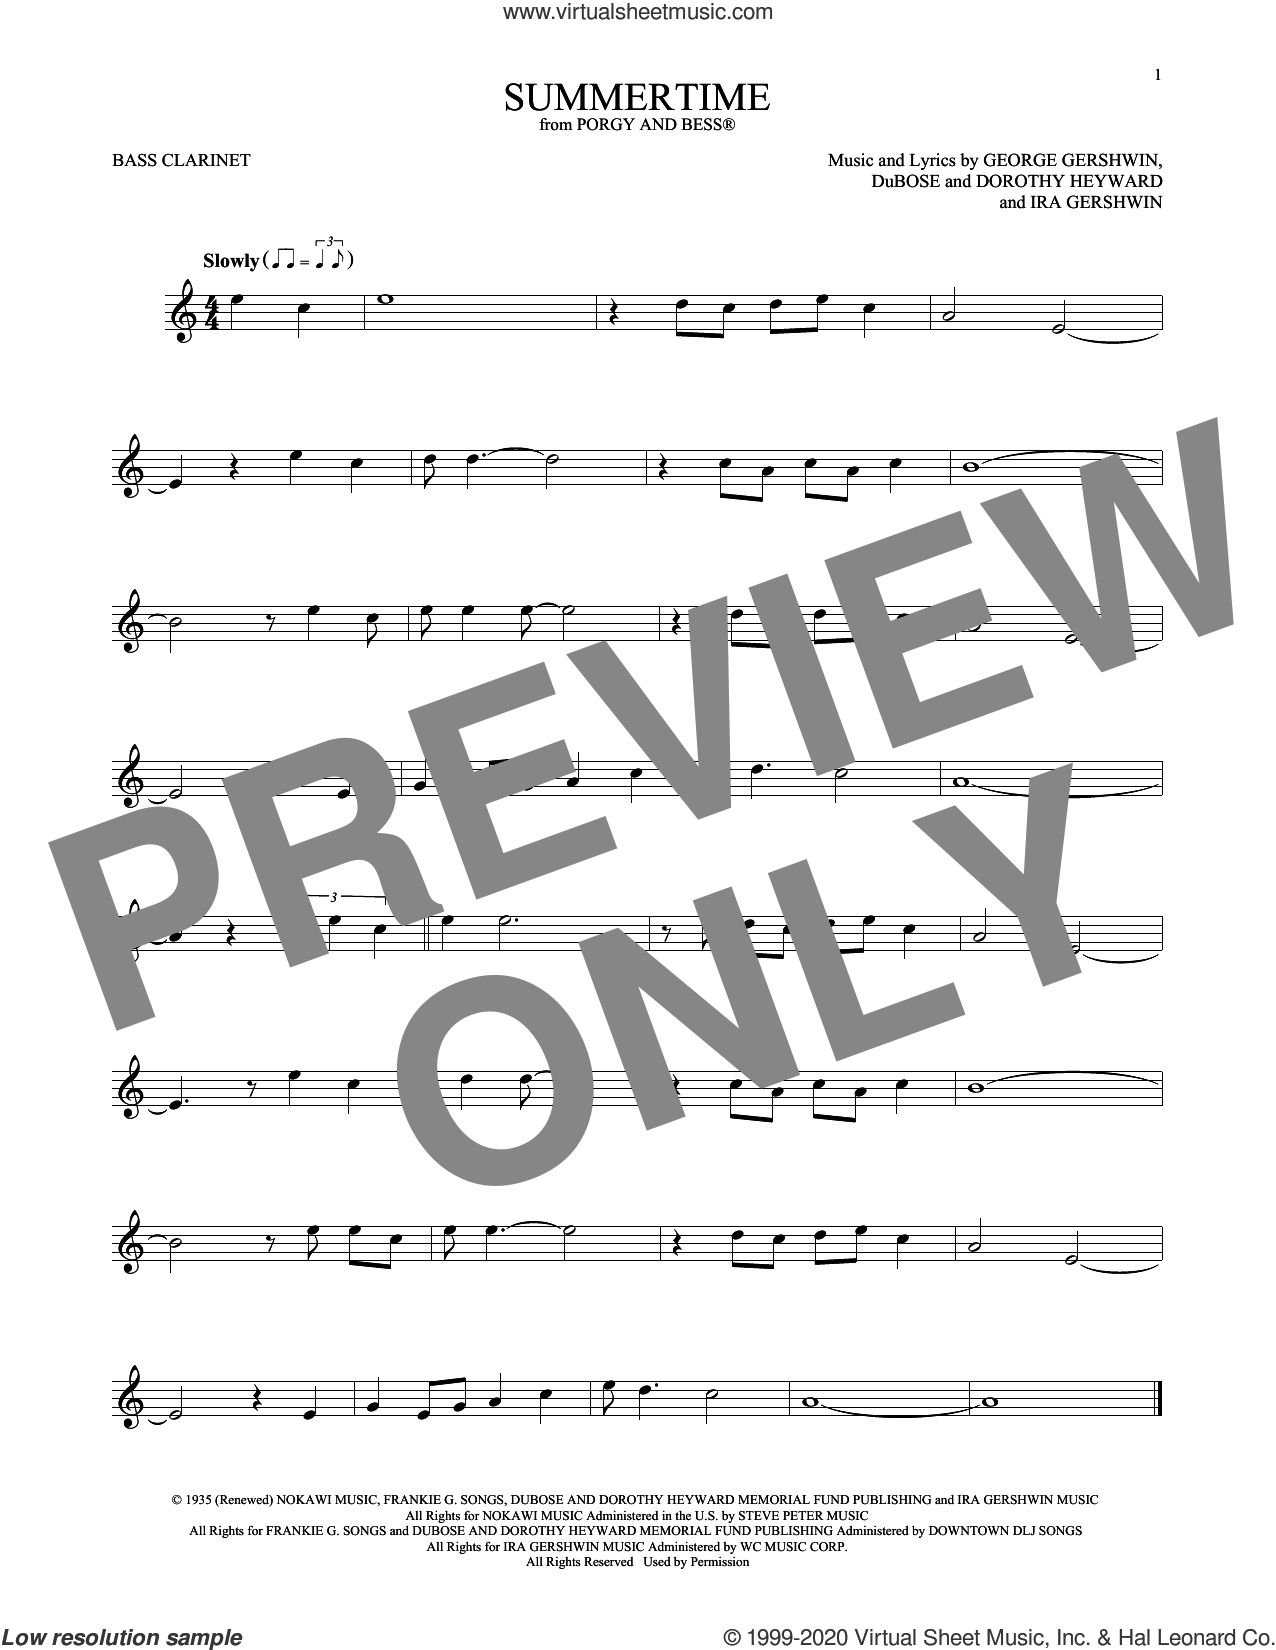 Summertime sheet music for Bass Clarinet Solo (clarinetto basso) by George Gershwin, Dorothy Heyward, DuBose Heyward and Ira Gershwin, intermediate skill level